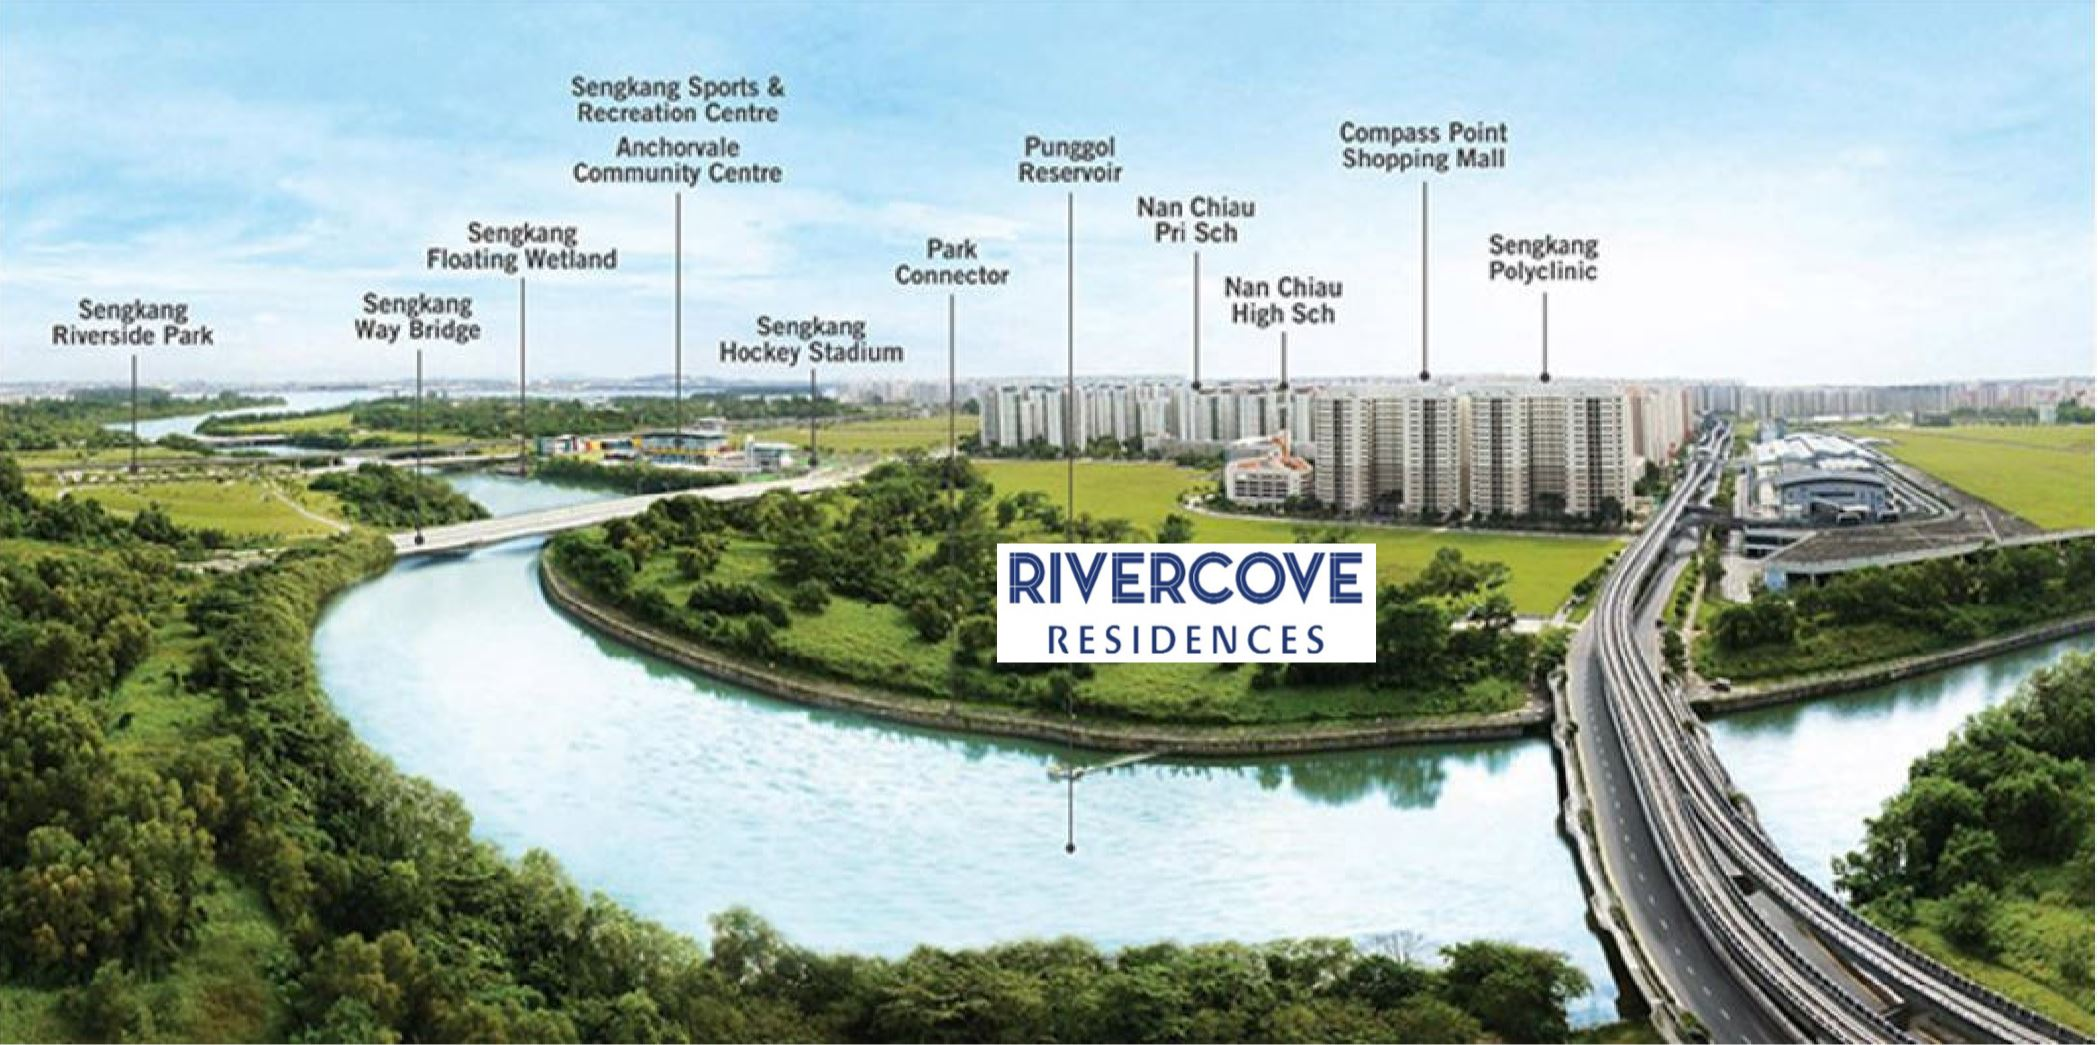 Artist's impression of Rivercove Residences landscape